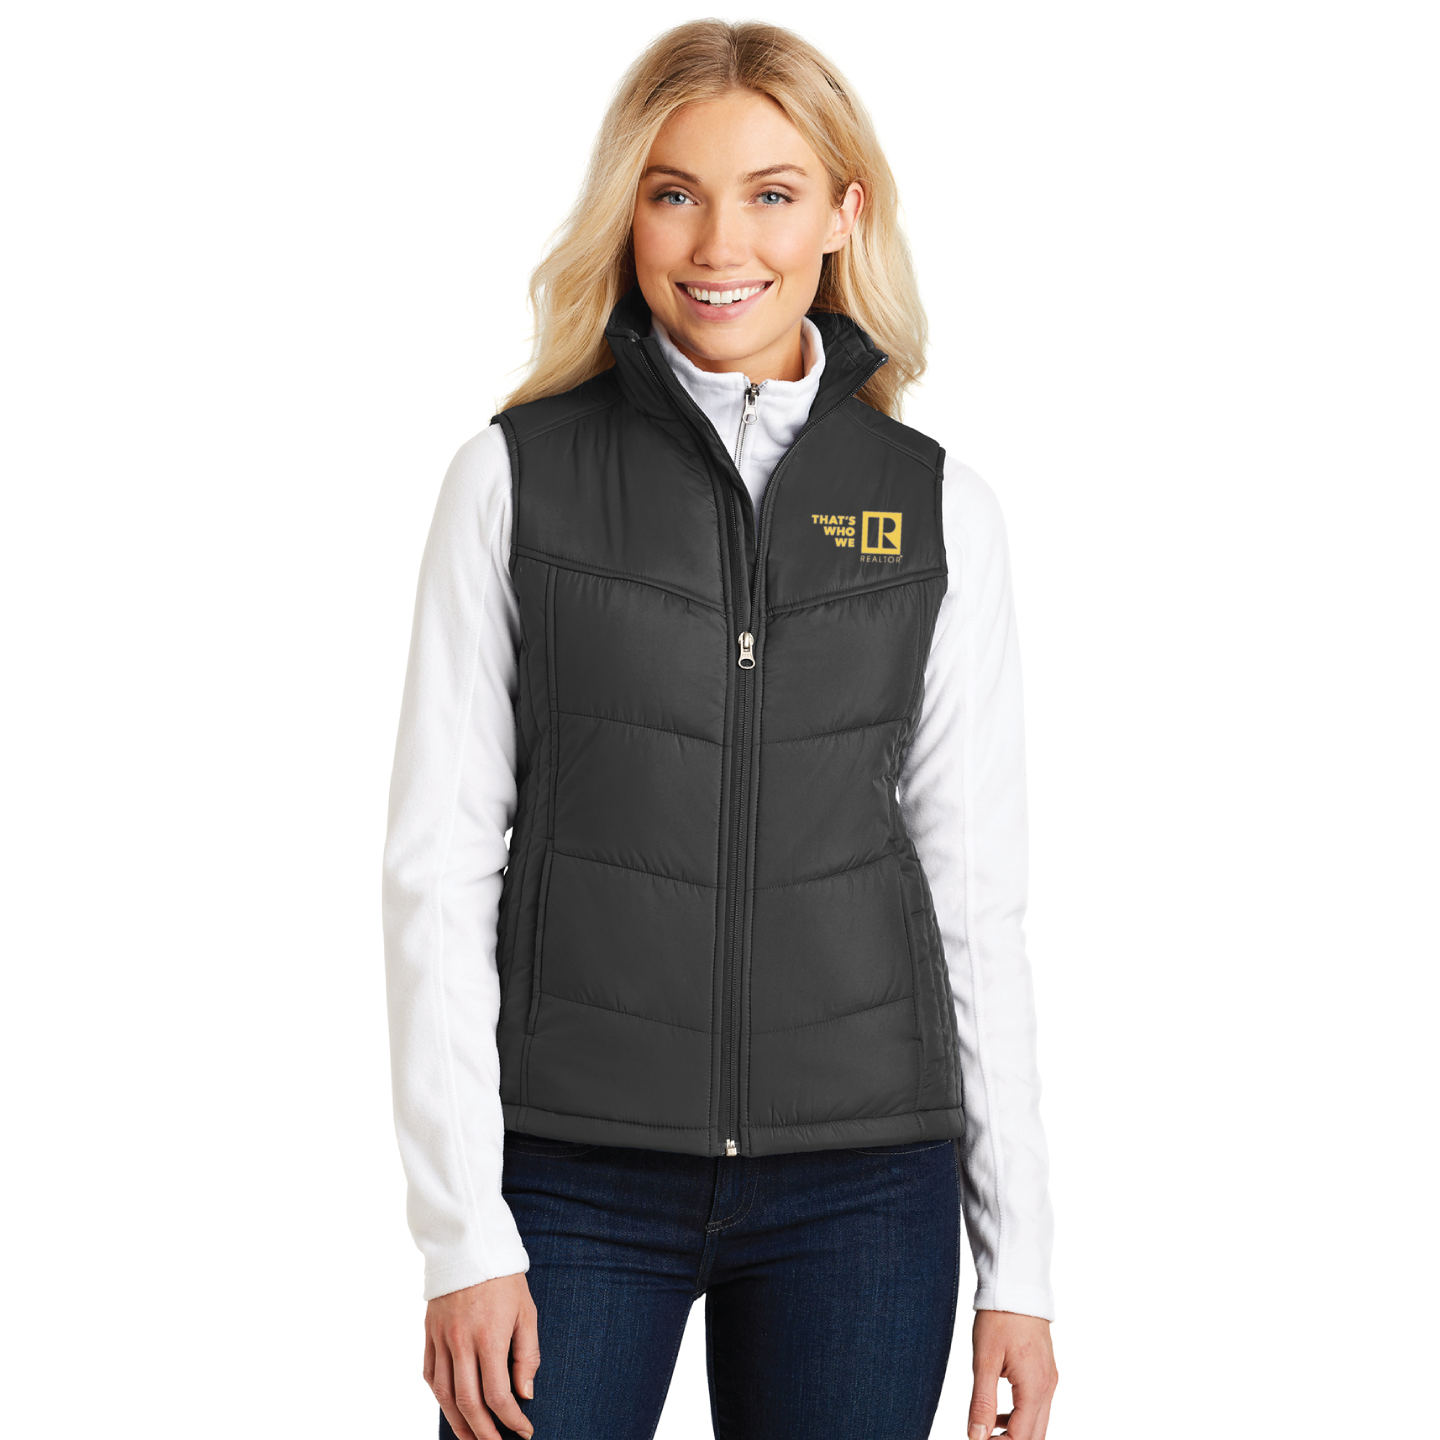 """Thats Who We R"" Ladies Puffy Vest twwr,ThatsWhoWeR,Thats,TWWR,ThatWho,ThatsWho,Twwr,Thats,Whos,We,Ares,Twwr,Thats,Whos,Wes,Ares,ladies,vests,Puffy,fluffy,winter,cold,fall,conference"